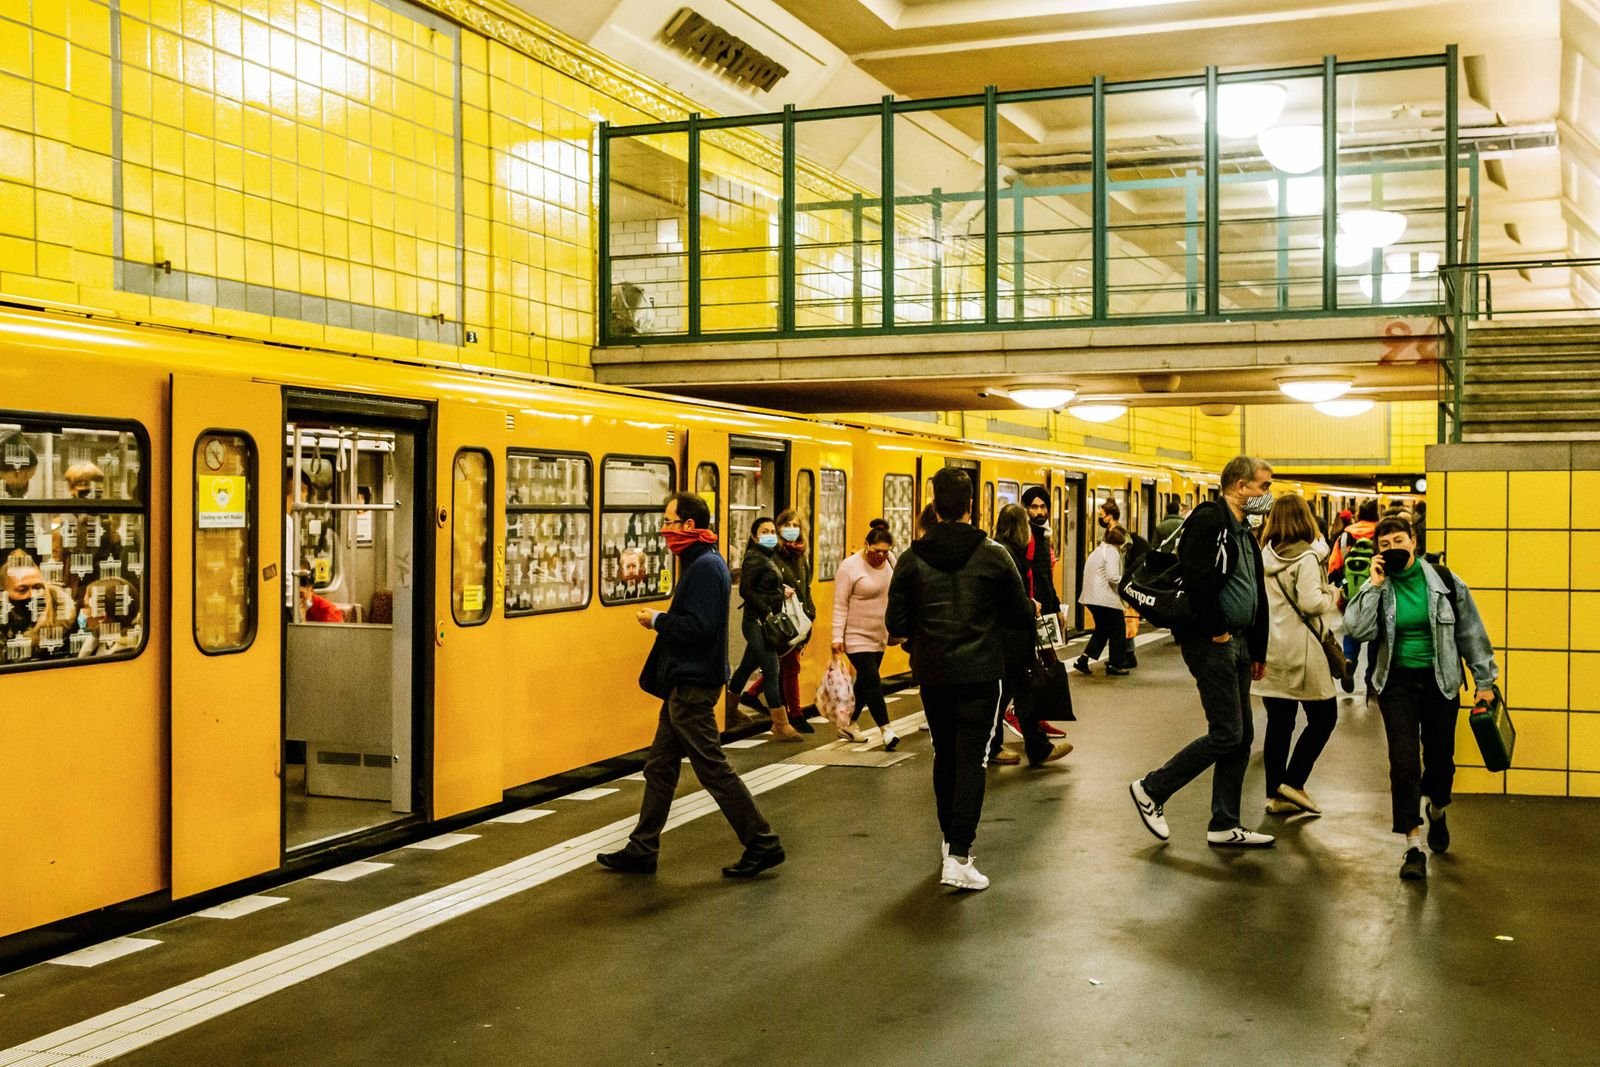 (201006) -- BERLIN, Oct. 6, 2020 -- Passengers are seen at a metro station in Berlin, capital of Germany, Oct. 5, 2020.